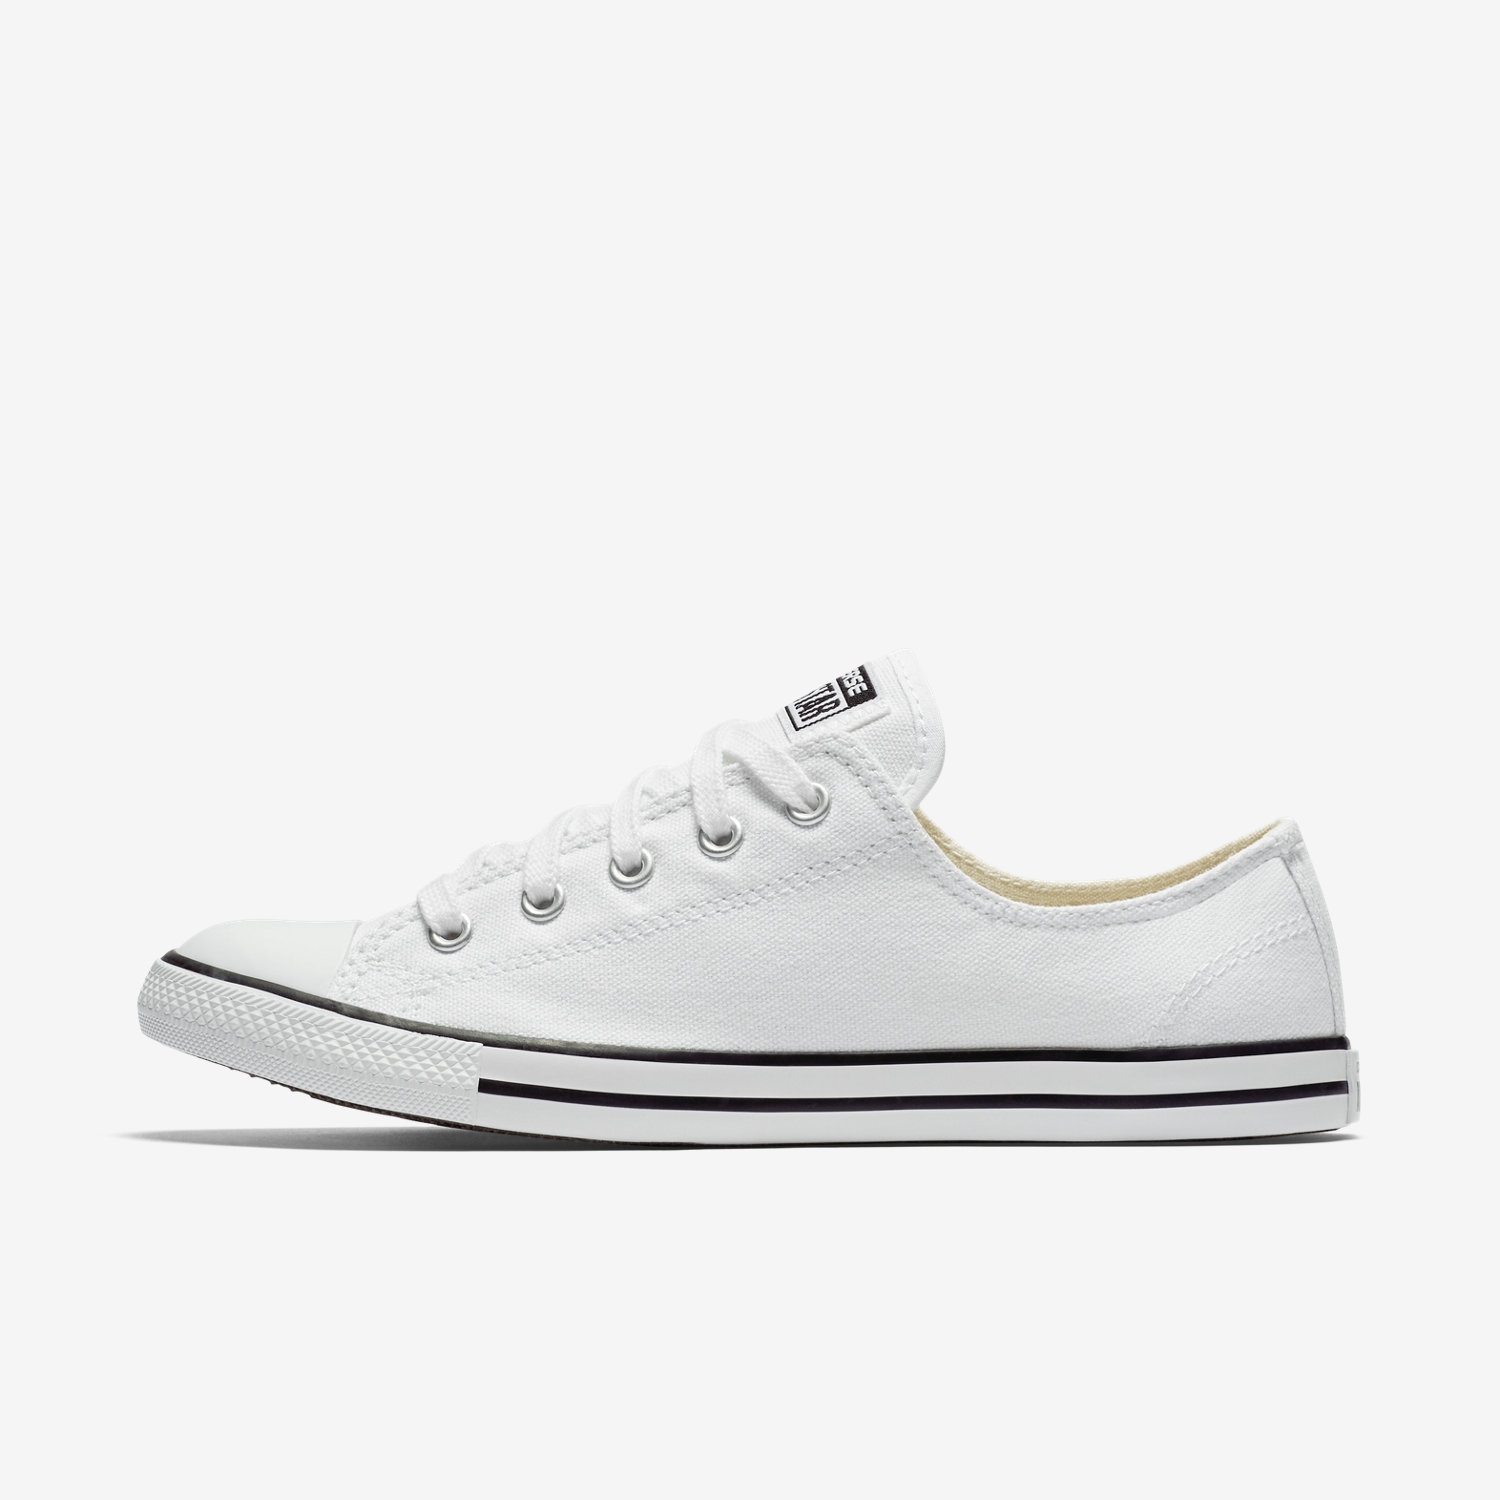 White converse converse chuck taylor all star dainty low top womenu0027s shoe. nike.com BQDKNSE